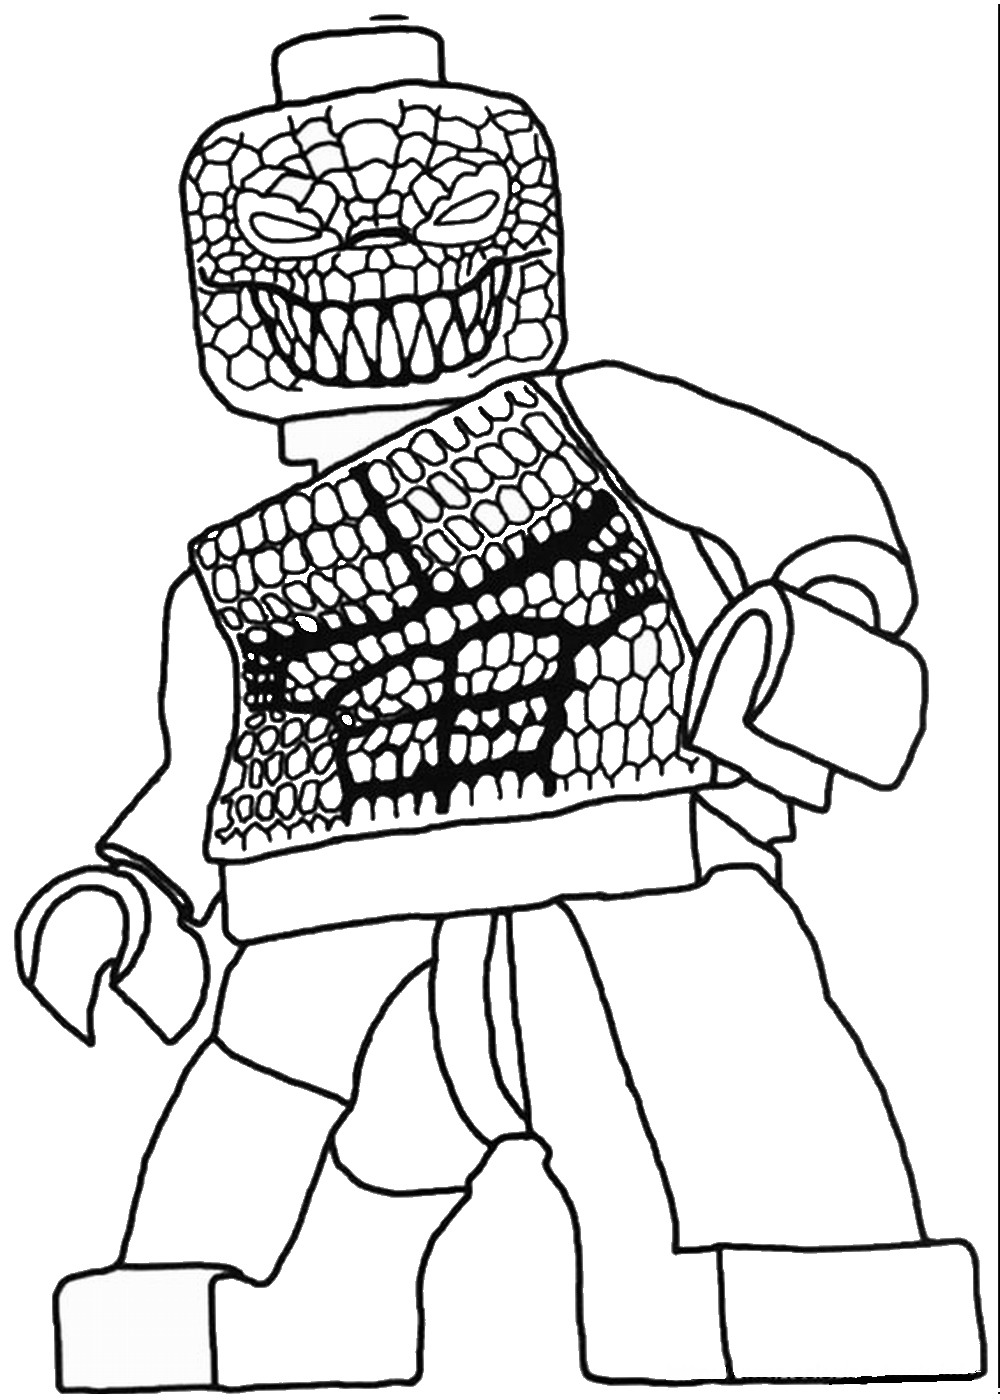 printable lego movie 2 coloring pages the lego movie vitruvius coloring page movie 2 lego printable coloring pages